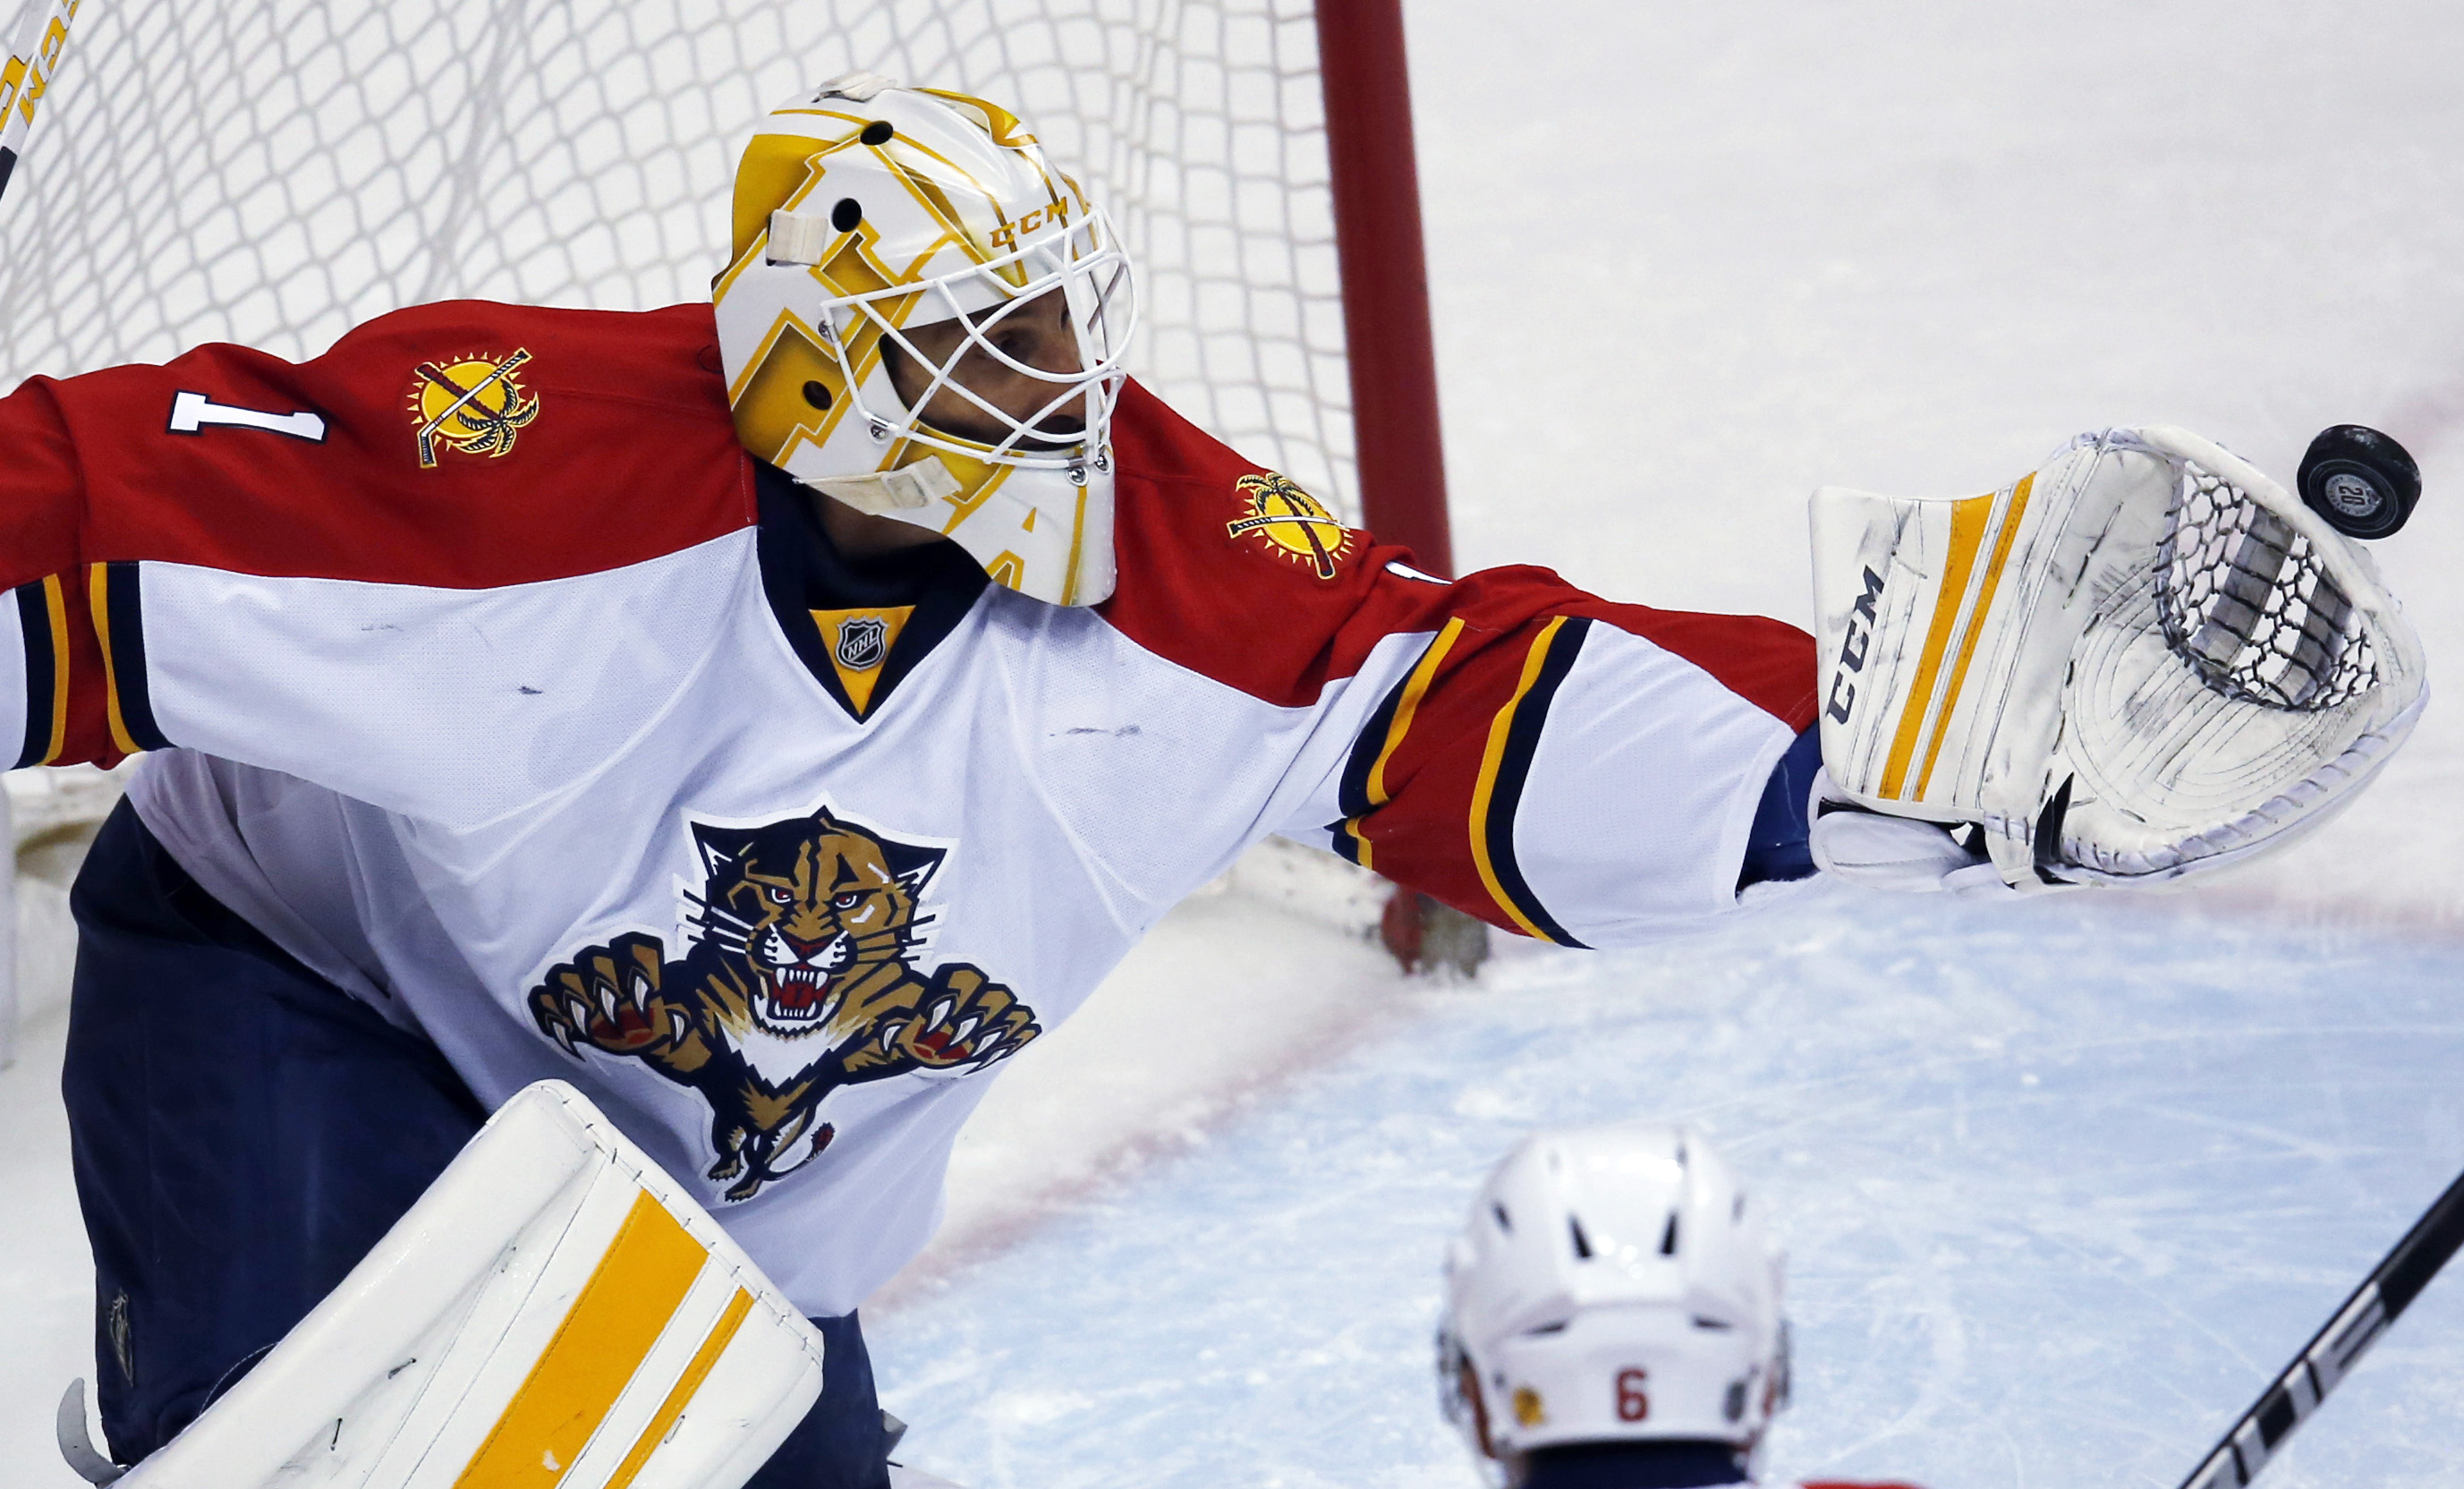 Florida Panthers goalie Roberto Luongo reaches out to stop a shot in the first period of an NHL hockey game against the Colorado Avalanche, Thursday, March 3, 2016, in Denver. (AP Photo/David Zalubowski)